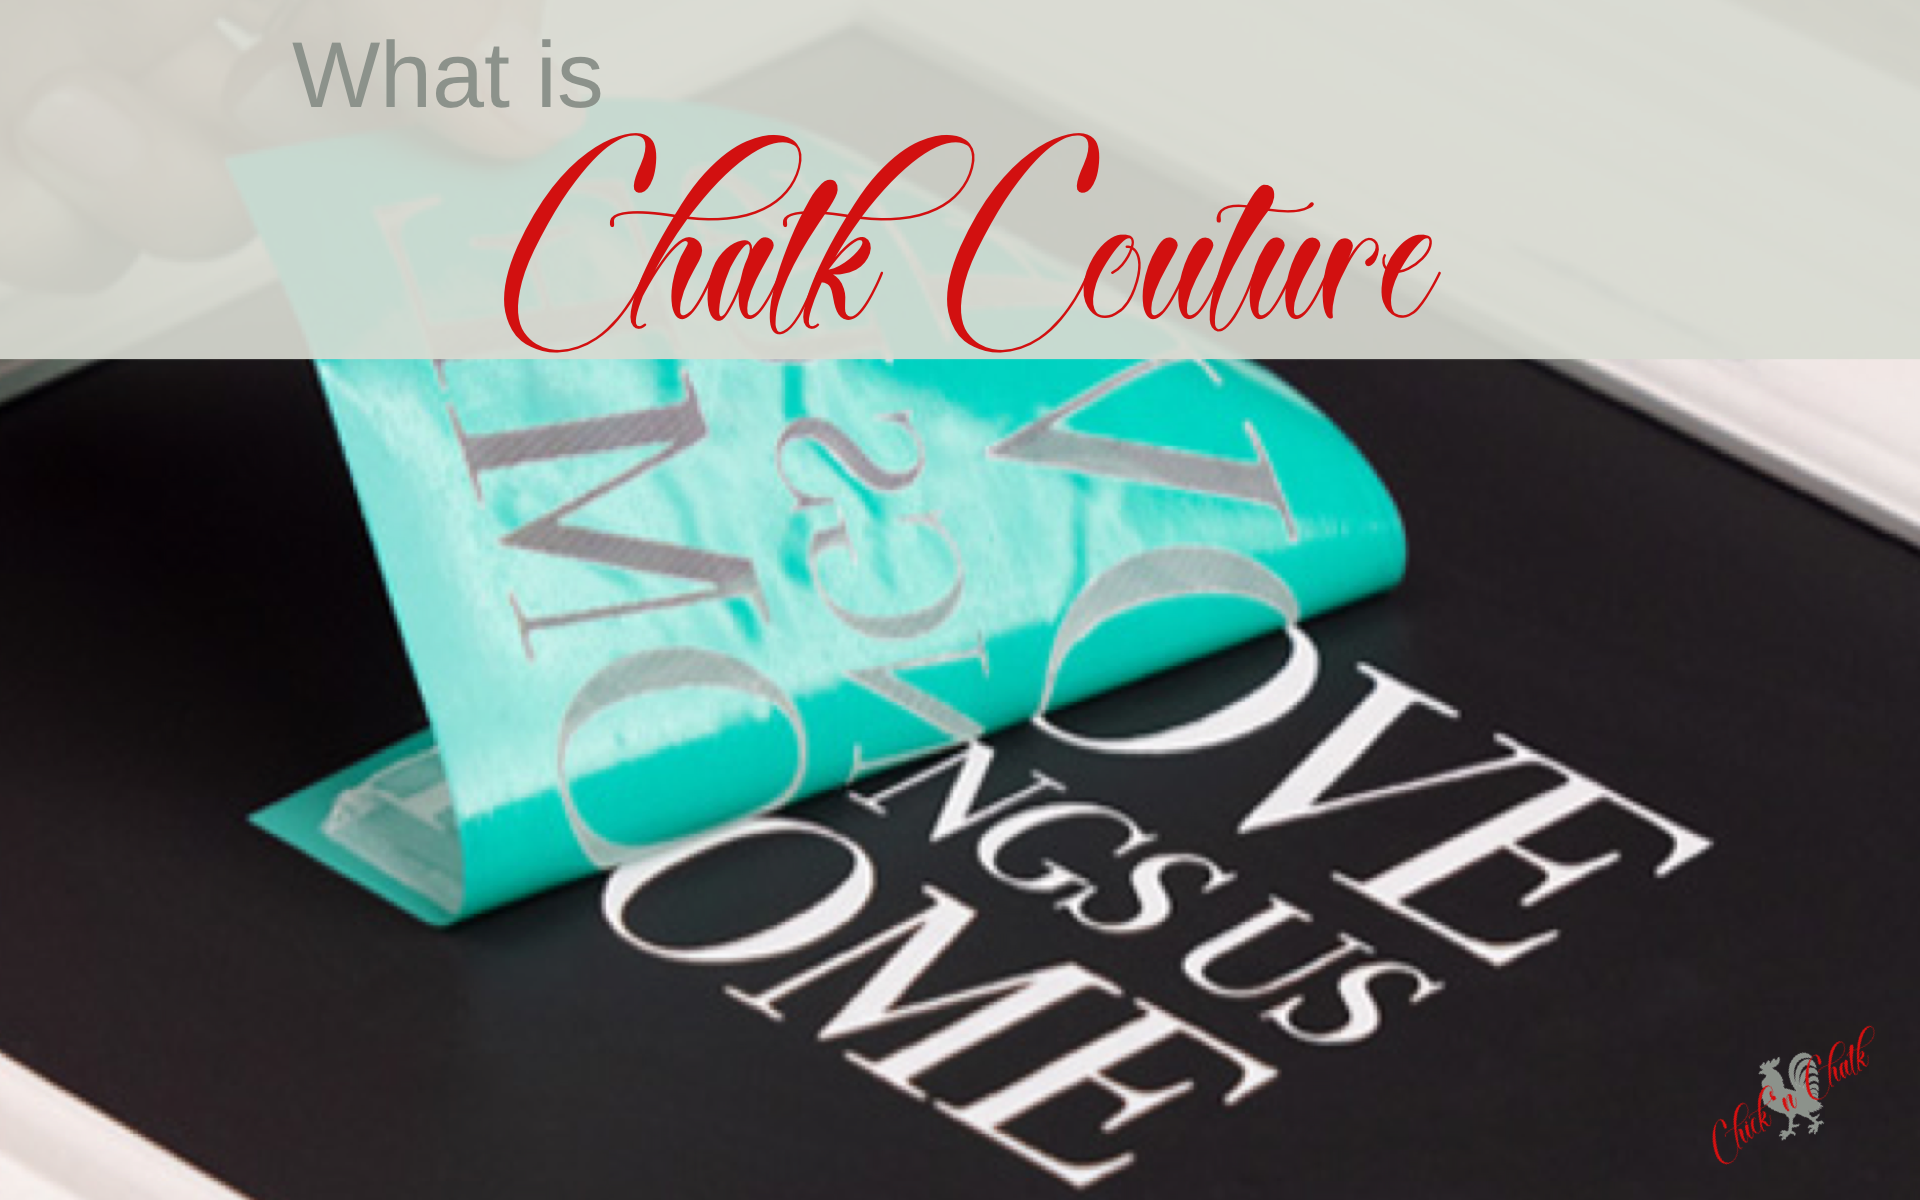 What is chalk couture